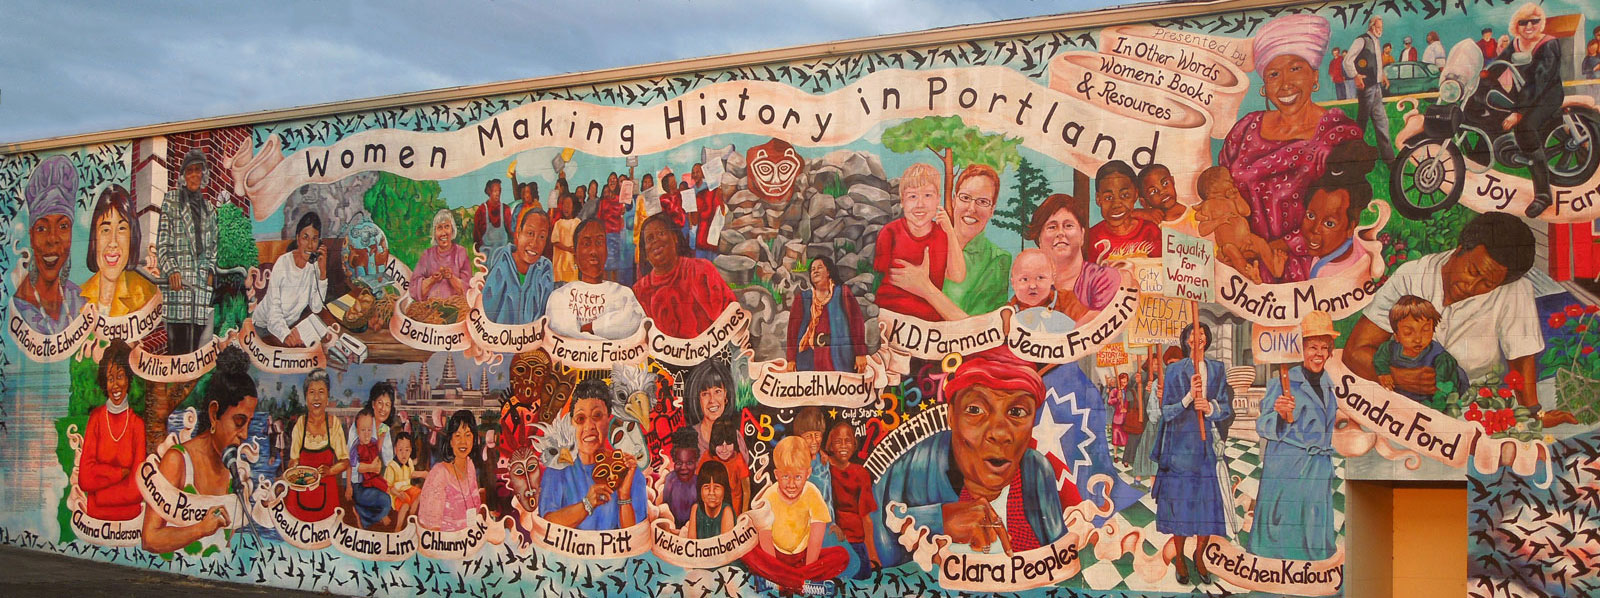 Women Making History Mural